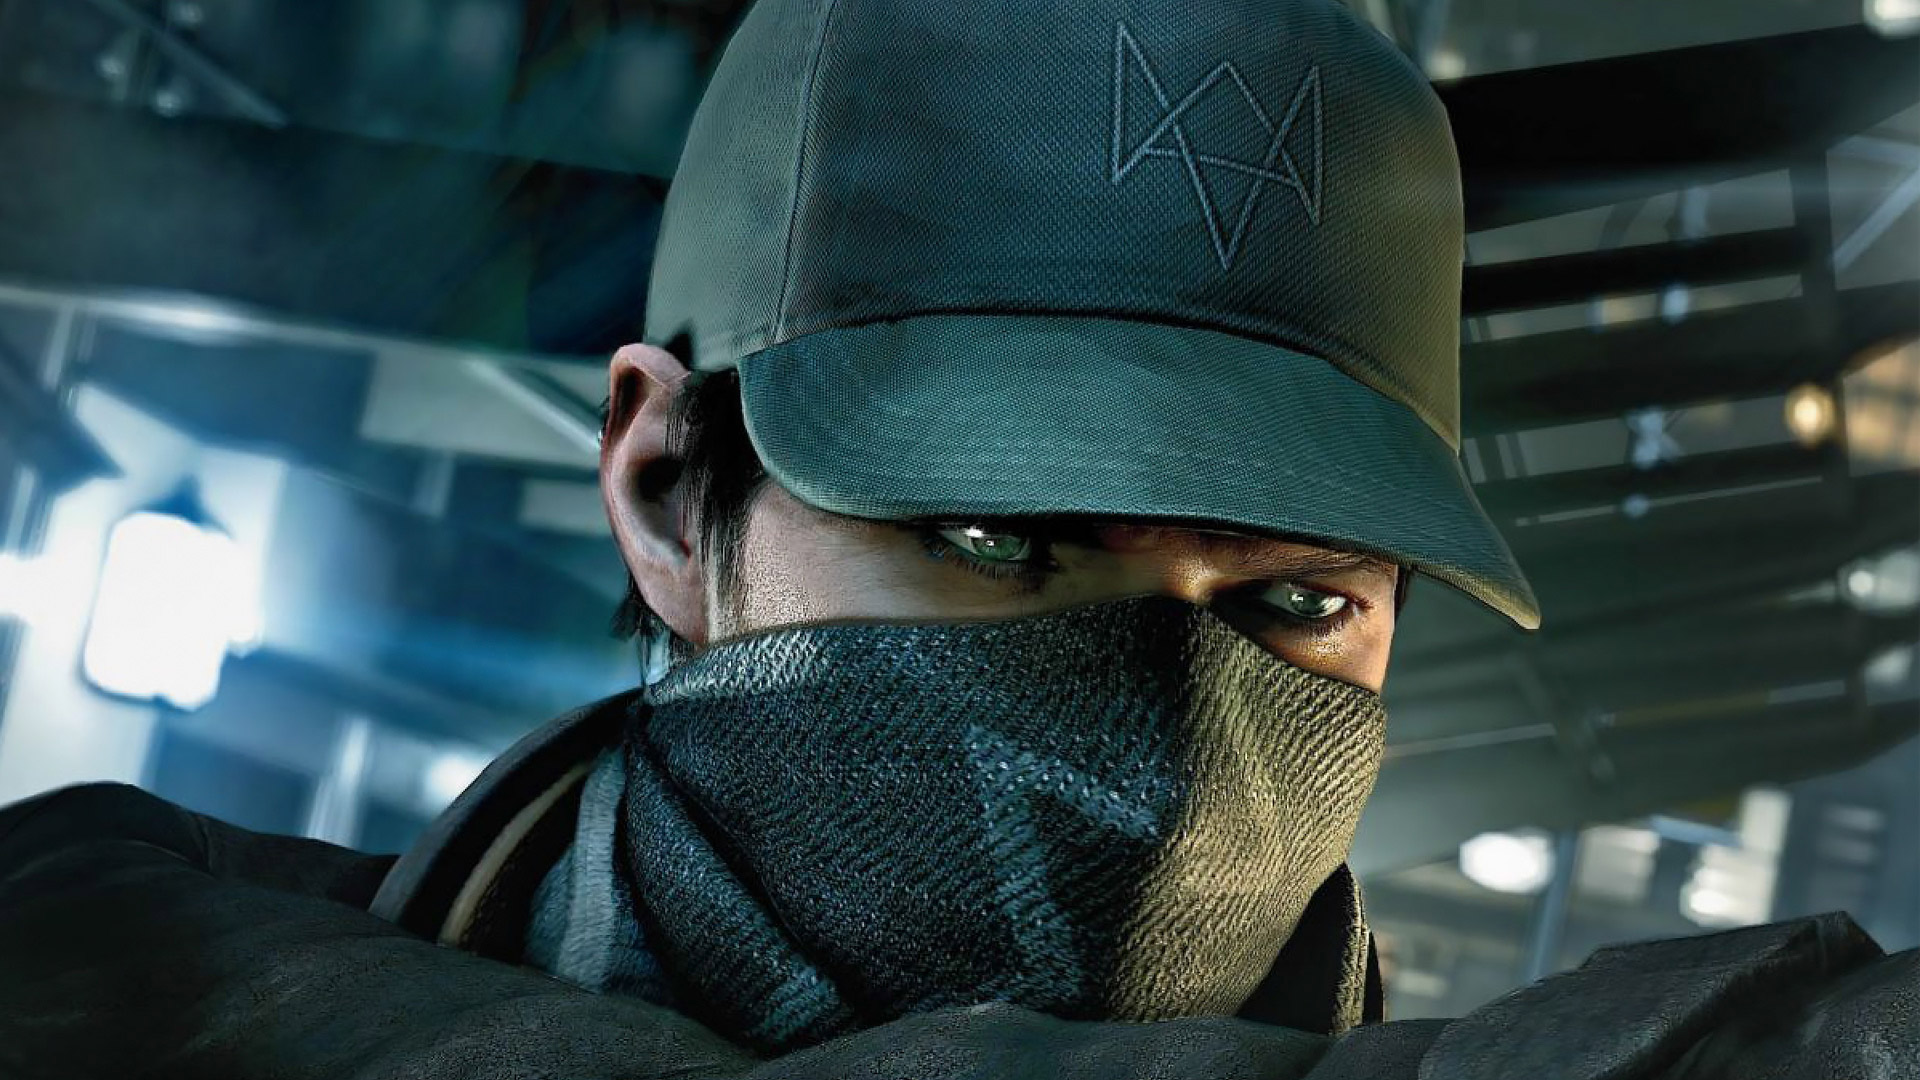 Earnings Disclaimer >> Download Wallpaper 1920x1080 aiden pearce, watch dogs, games Full HD 1080p HD Background